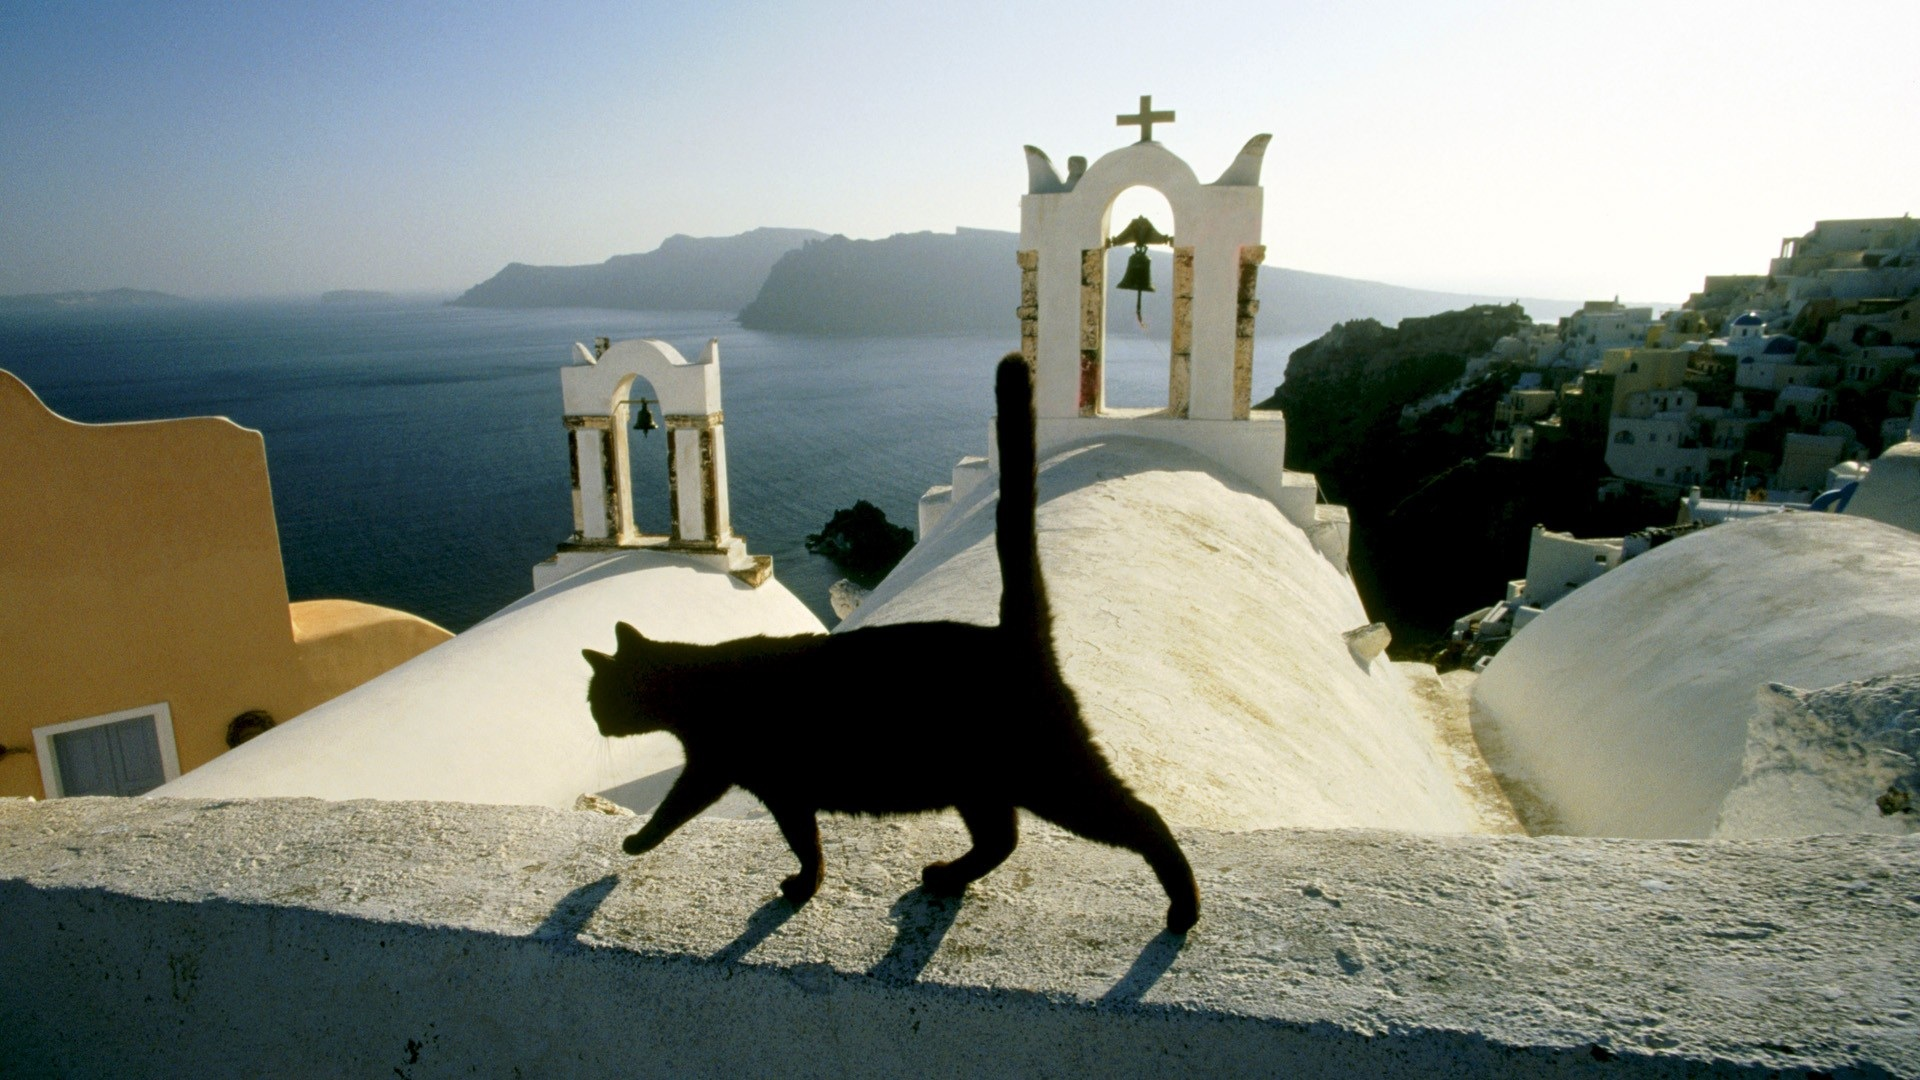 1920x1080 Black cat on the church roof in Greece desktop PC and 1920x1080